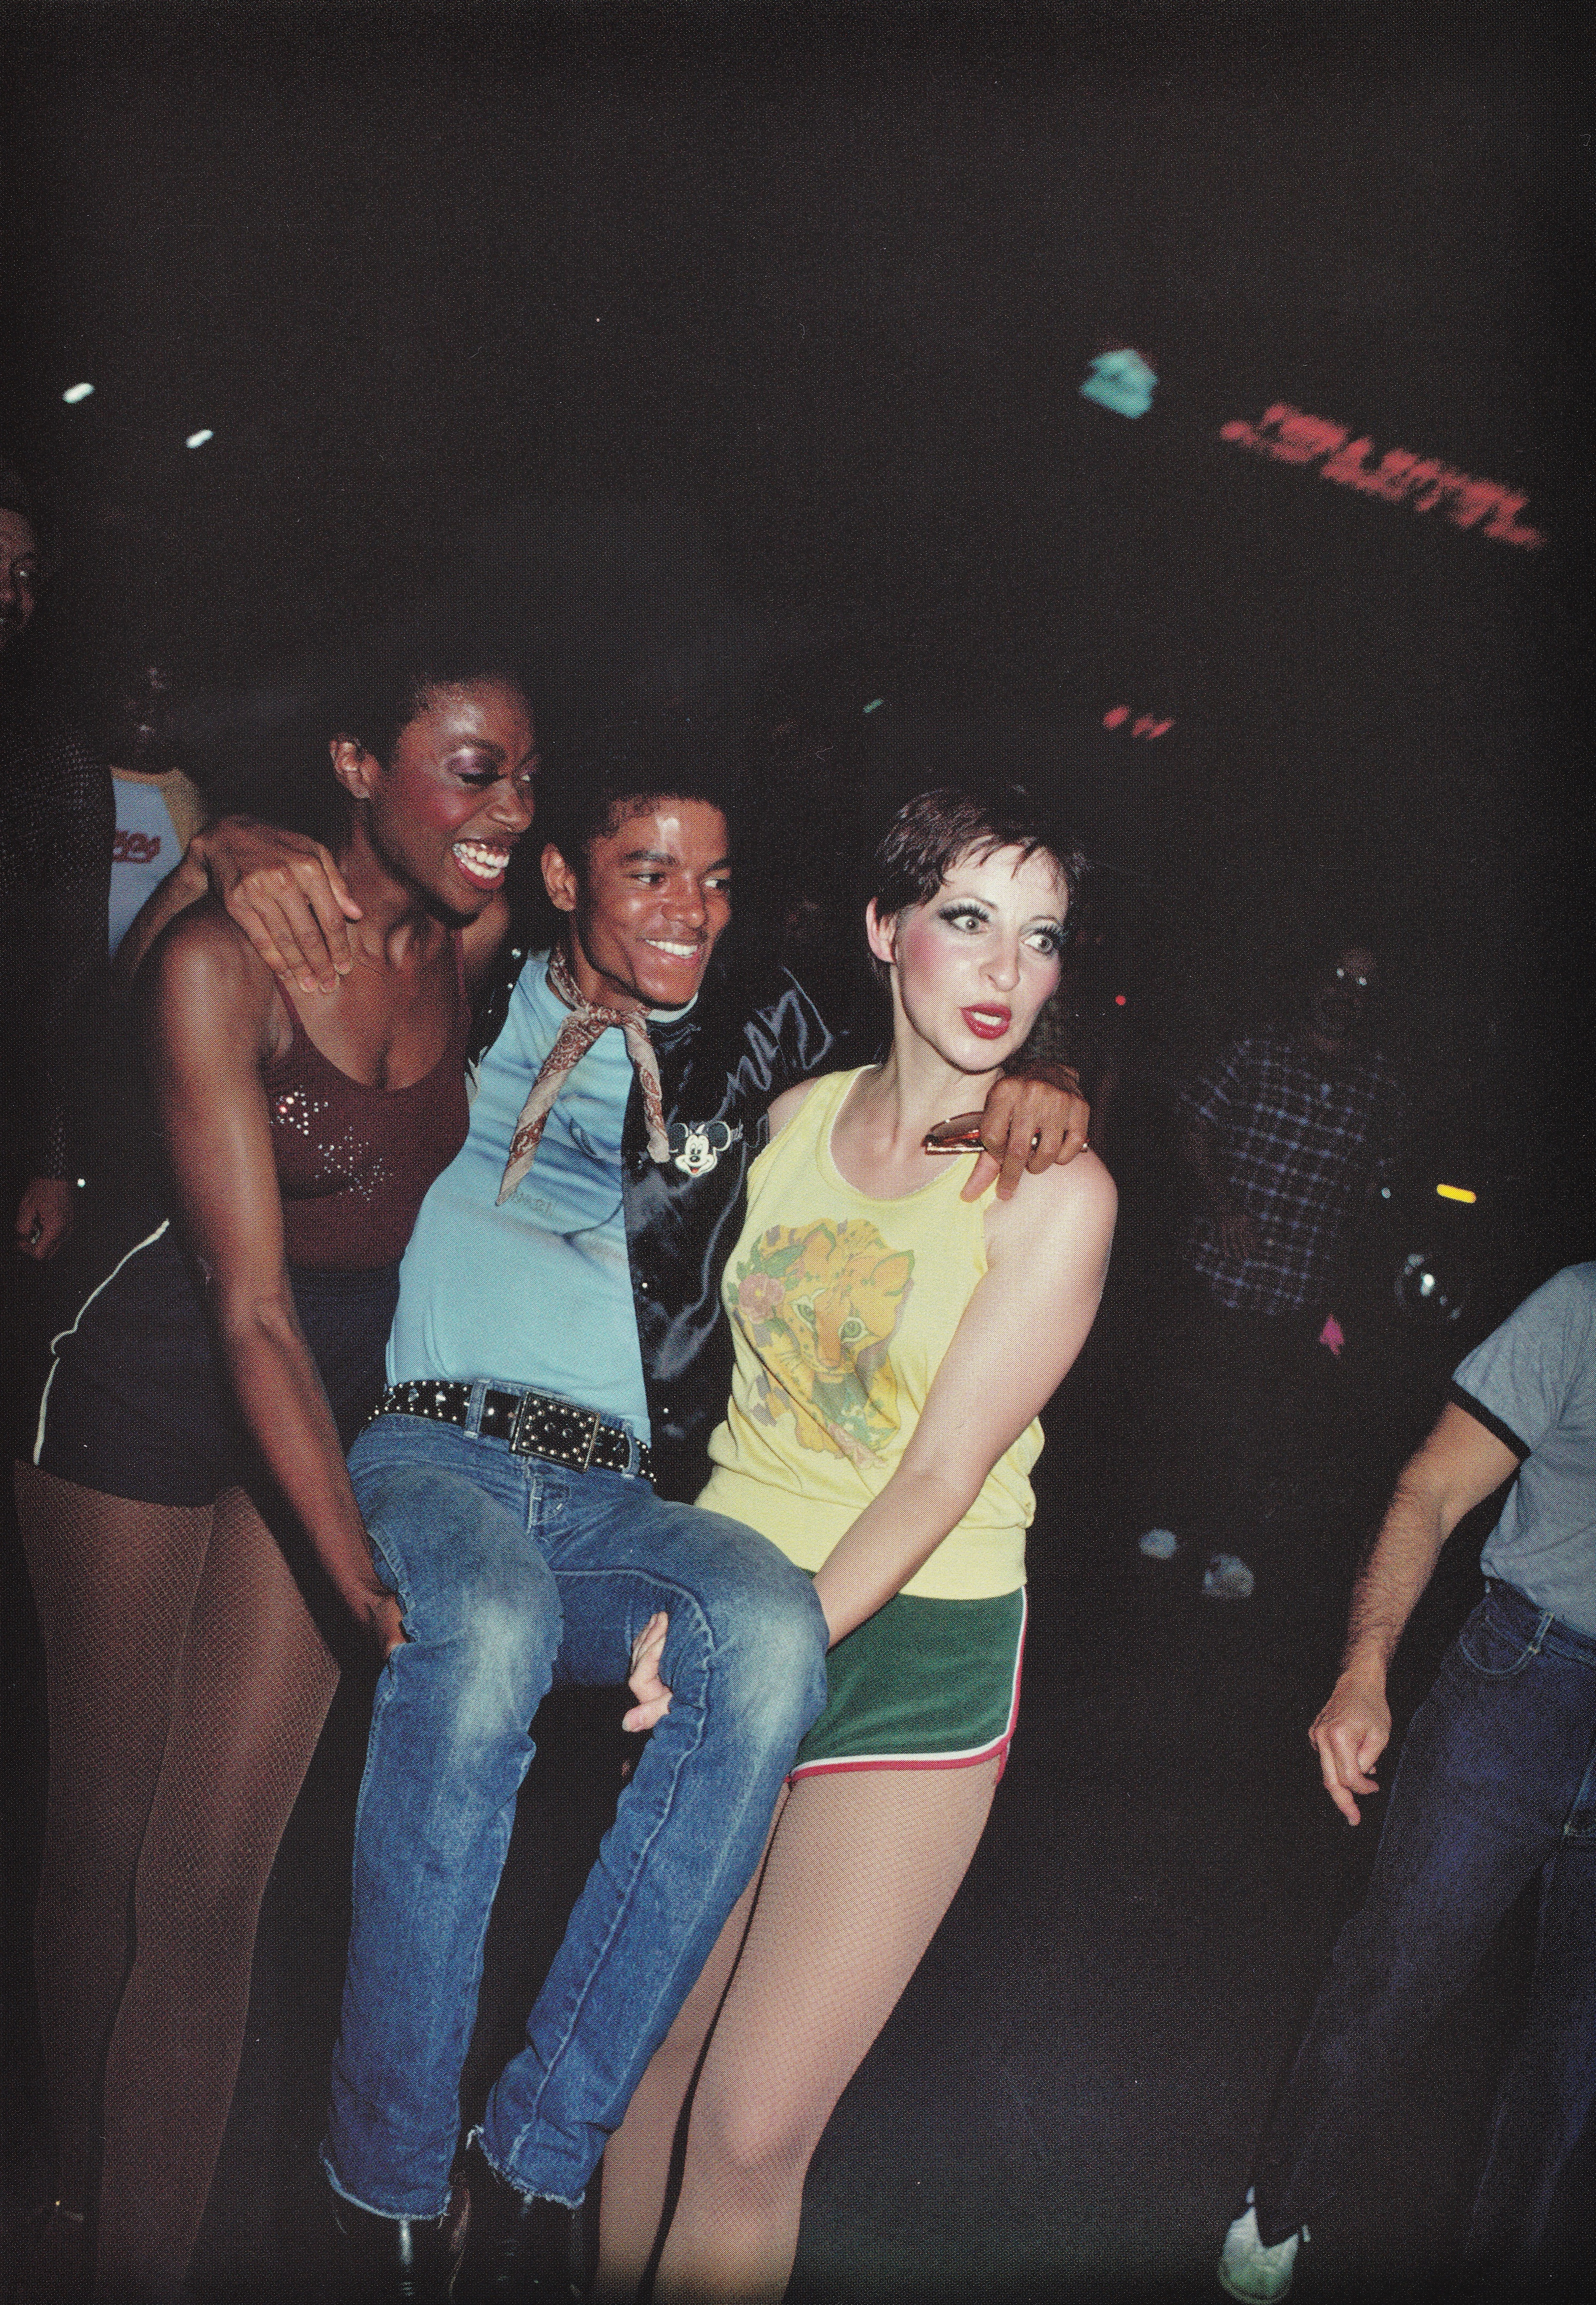 Michael Jackson - HQ Scan - Michael at a Circus? 1981